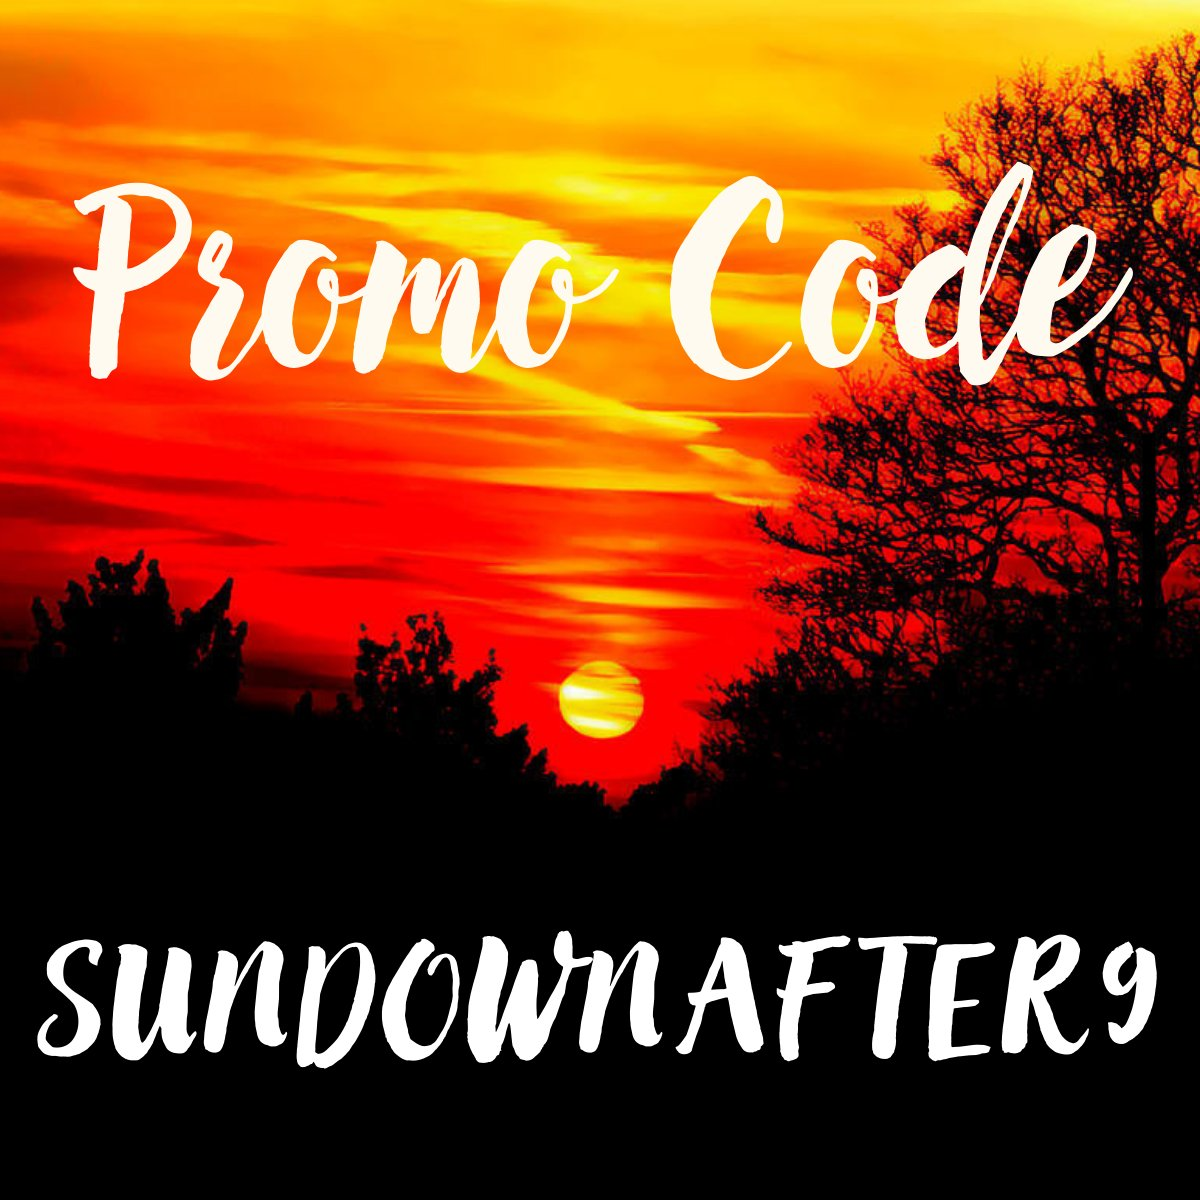 Let us help you save some time so you can enjoy sunsets instead of washing dishes with promo code SUNDOWNAFTER9, good for any plan renewal or signup.  https://t.co/X9q7Oj17Uw  #healthyheart #hamilton #burlington #london #eathealthy #healthy #nutrition #cleaneating #balance #promo https://t.co/xI8tVyGTbB